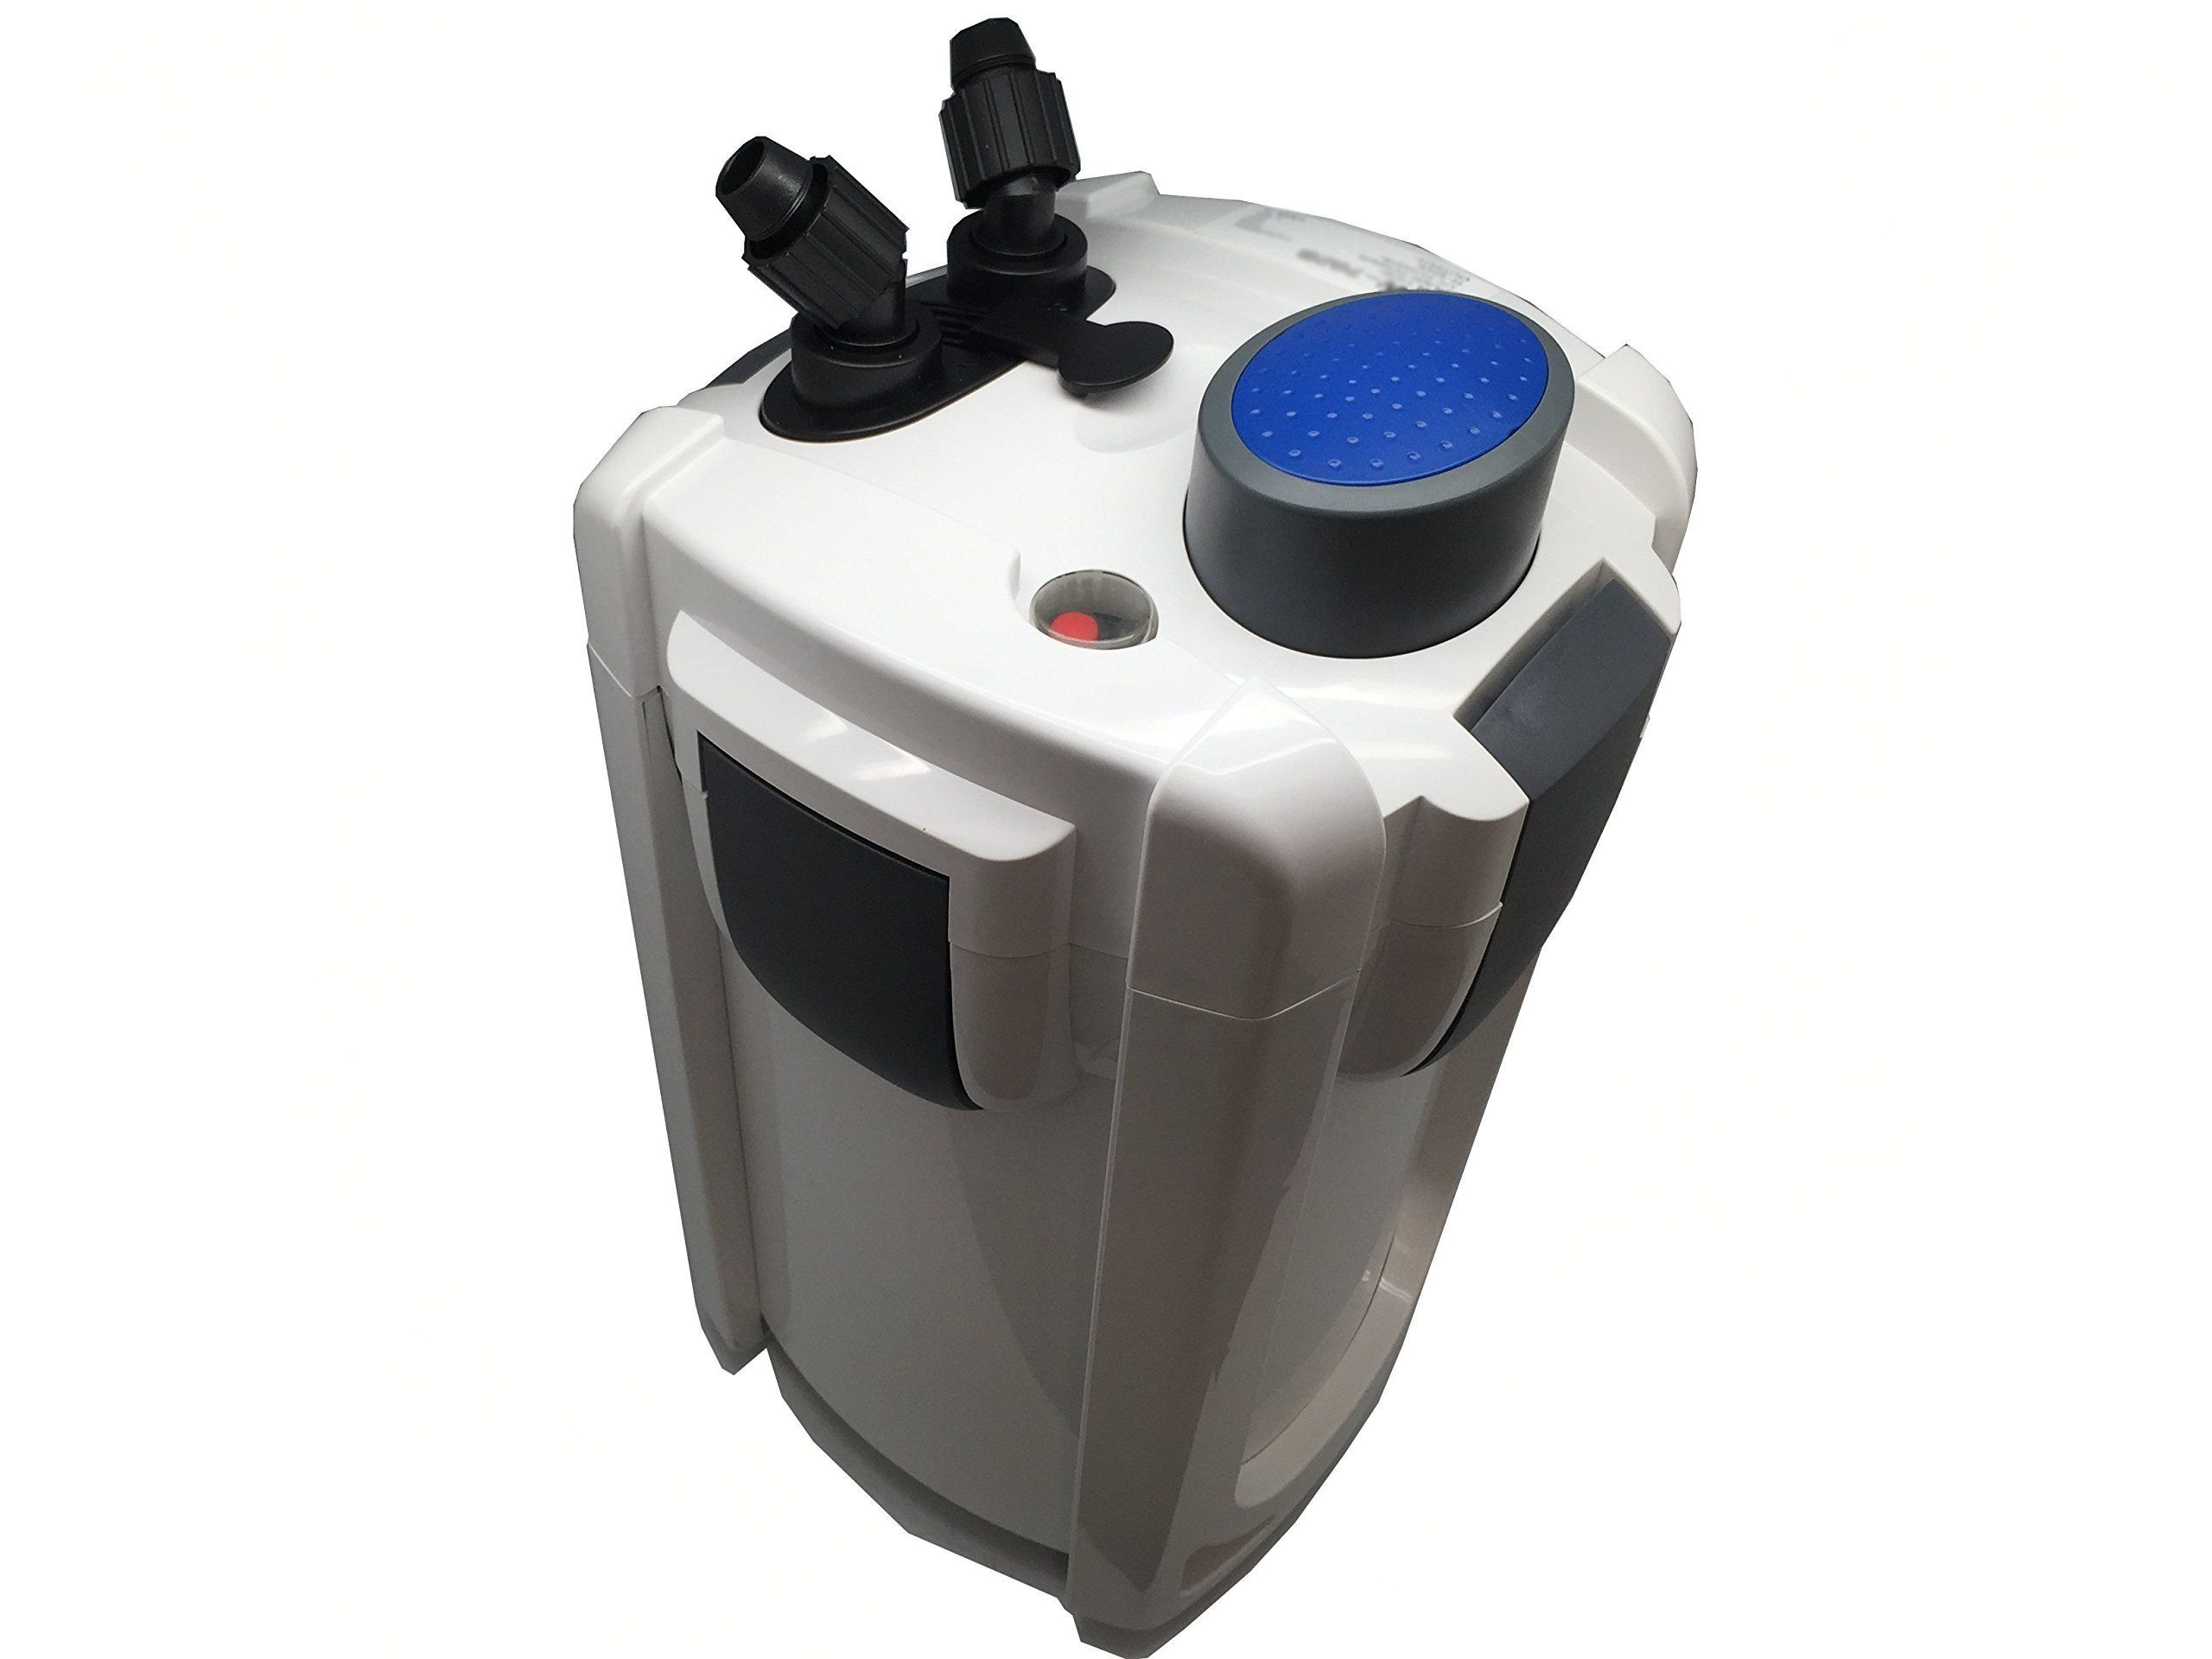 SunSun HW 704B 525 GPH 5 Stage External Canister Filter with 9W UV